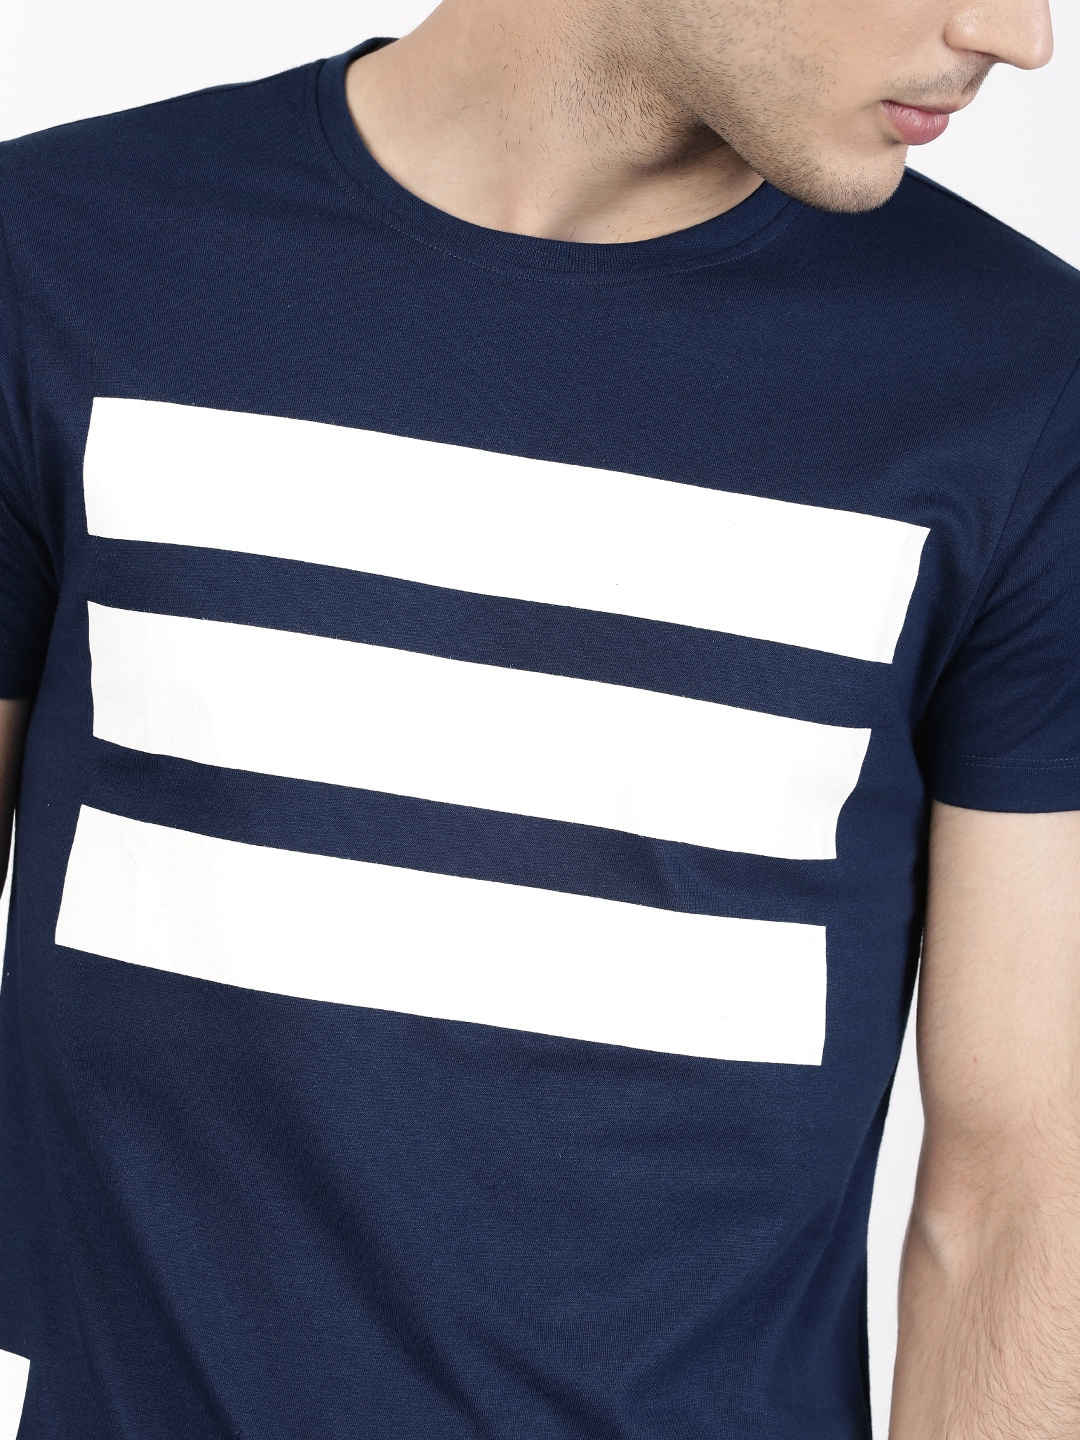 15cb10c2f67 Navy Blue T Shirt Front And Back